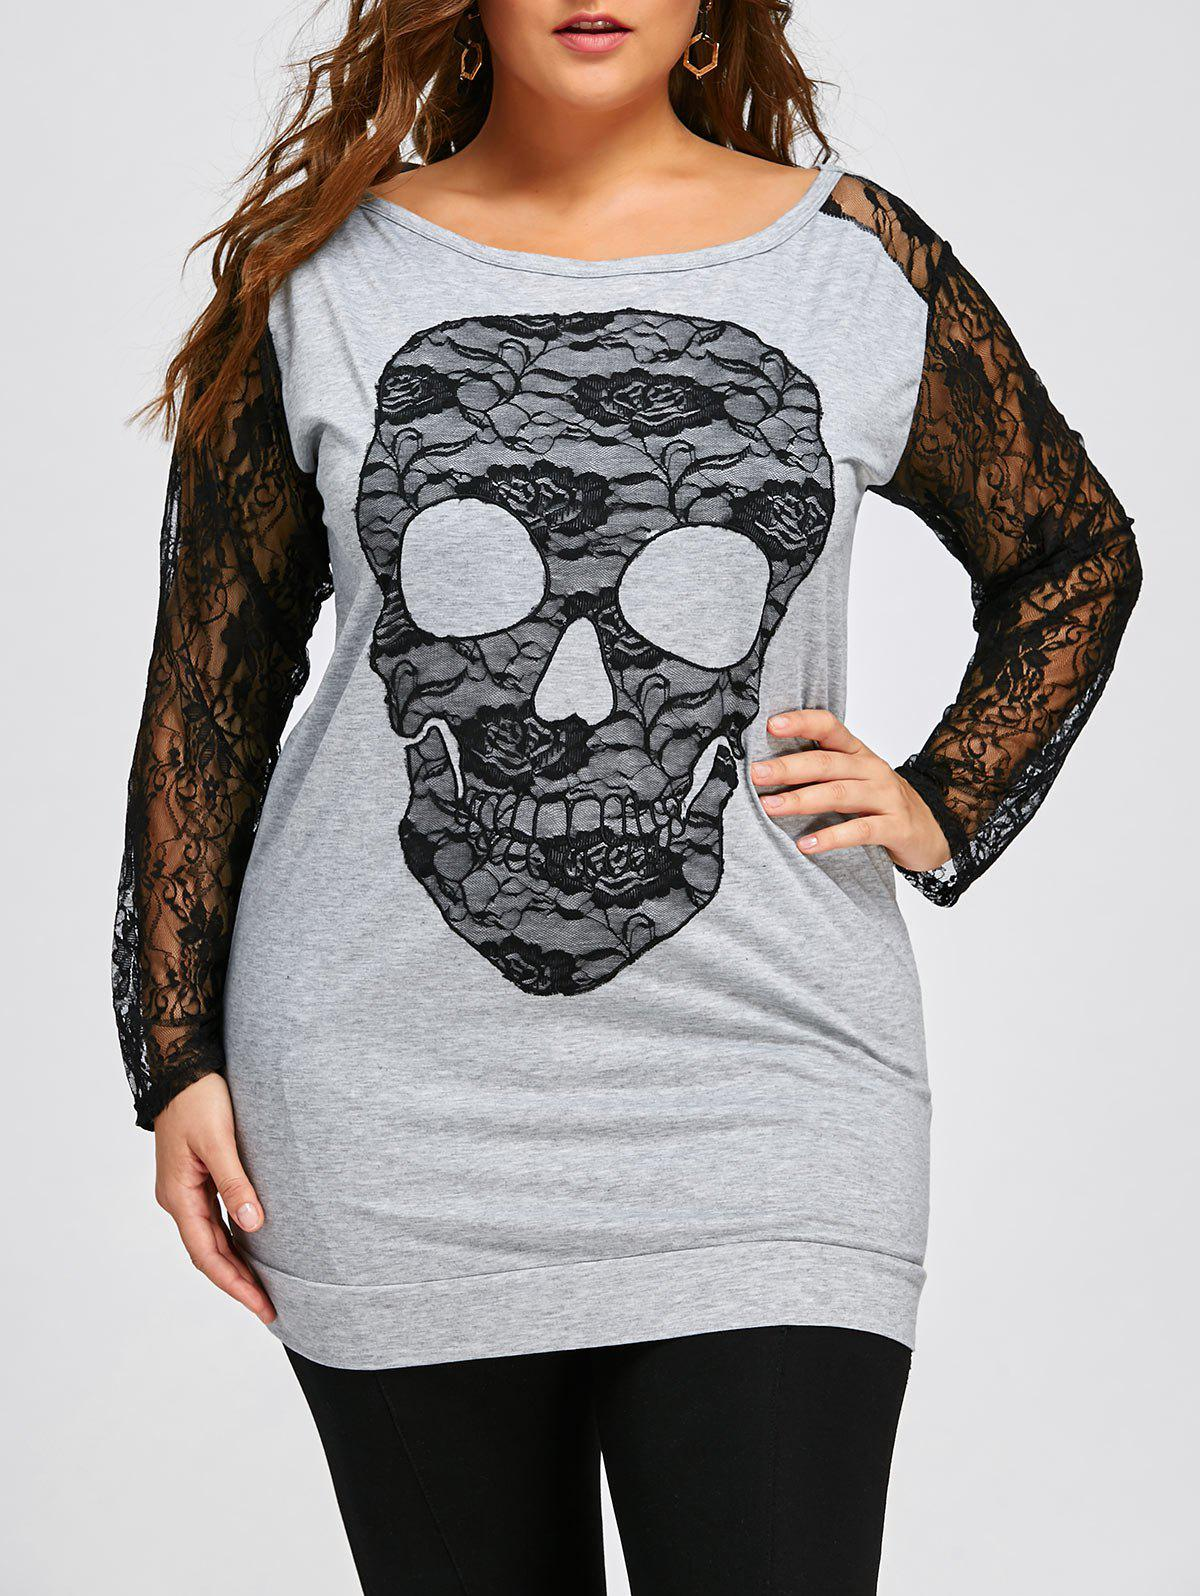 Halloween Plus Size Lace Trim Skull SweatshirtWOMEN<br><br>Size: 5XL; Color: BLACK AND GREY; Material: Polyester,Spandex; Shirt Length: Long; Sleeve Length: Full; Style: Casual; Pattern Style: Skulls; Embellishment: Lace; Season: Fall,Spring; Weight: 0.3700kg; Package Contents: 1 x Sweatshirt;